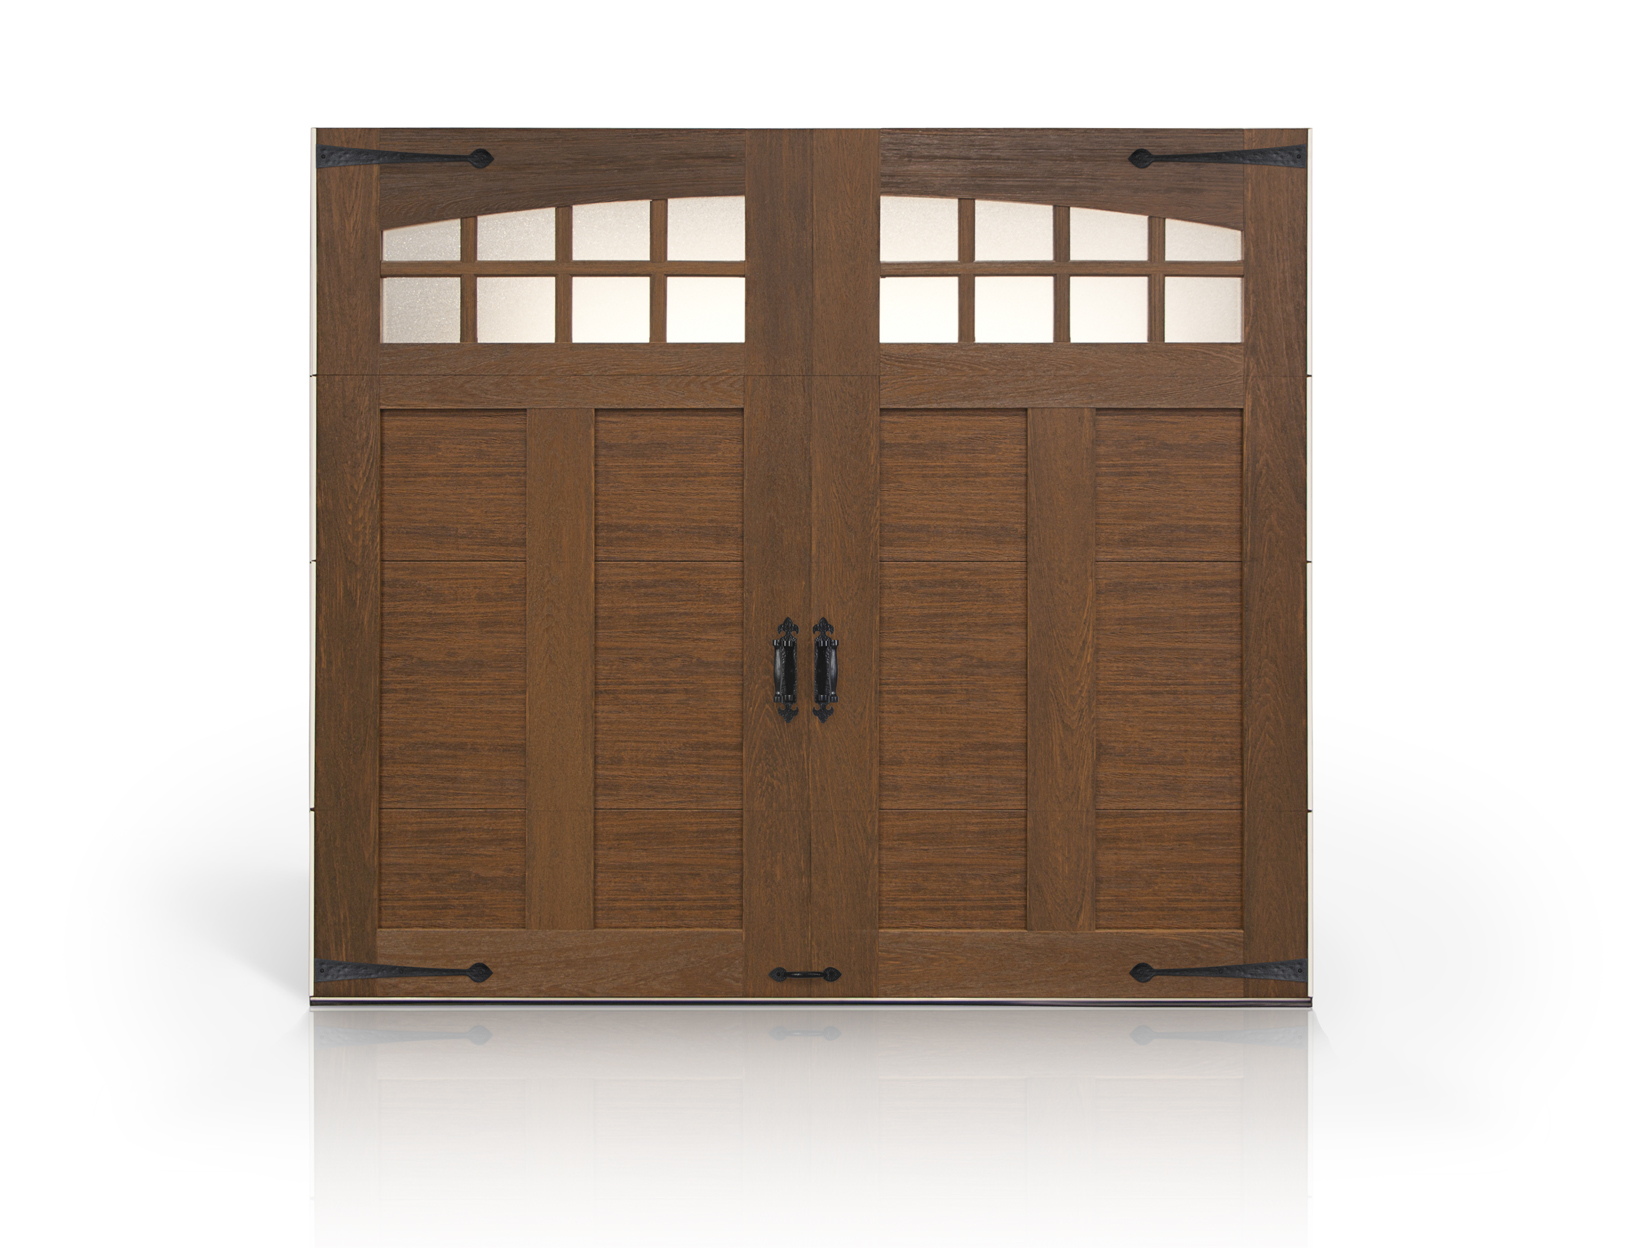 We Ll Take The Fake New Clopay Faux Wood Garage Door Makes This Old House Magazine S Top 100 Products List